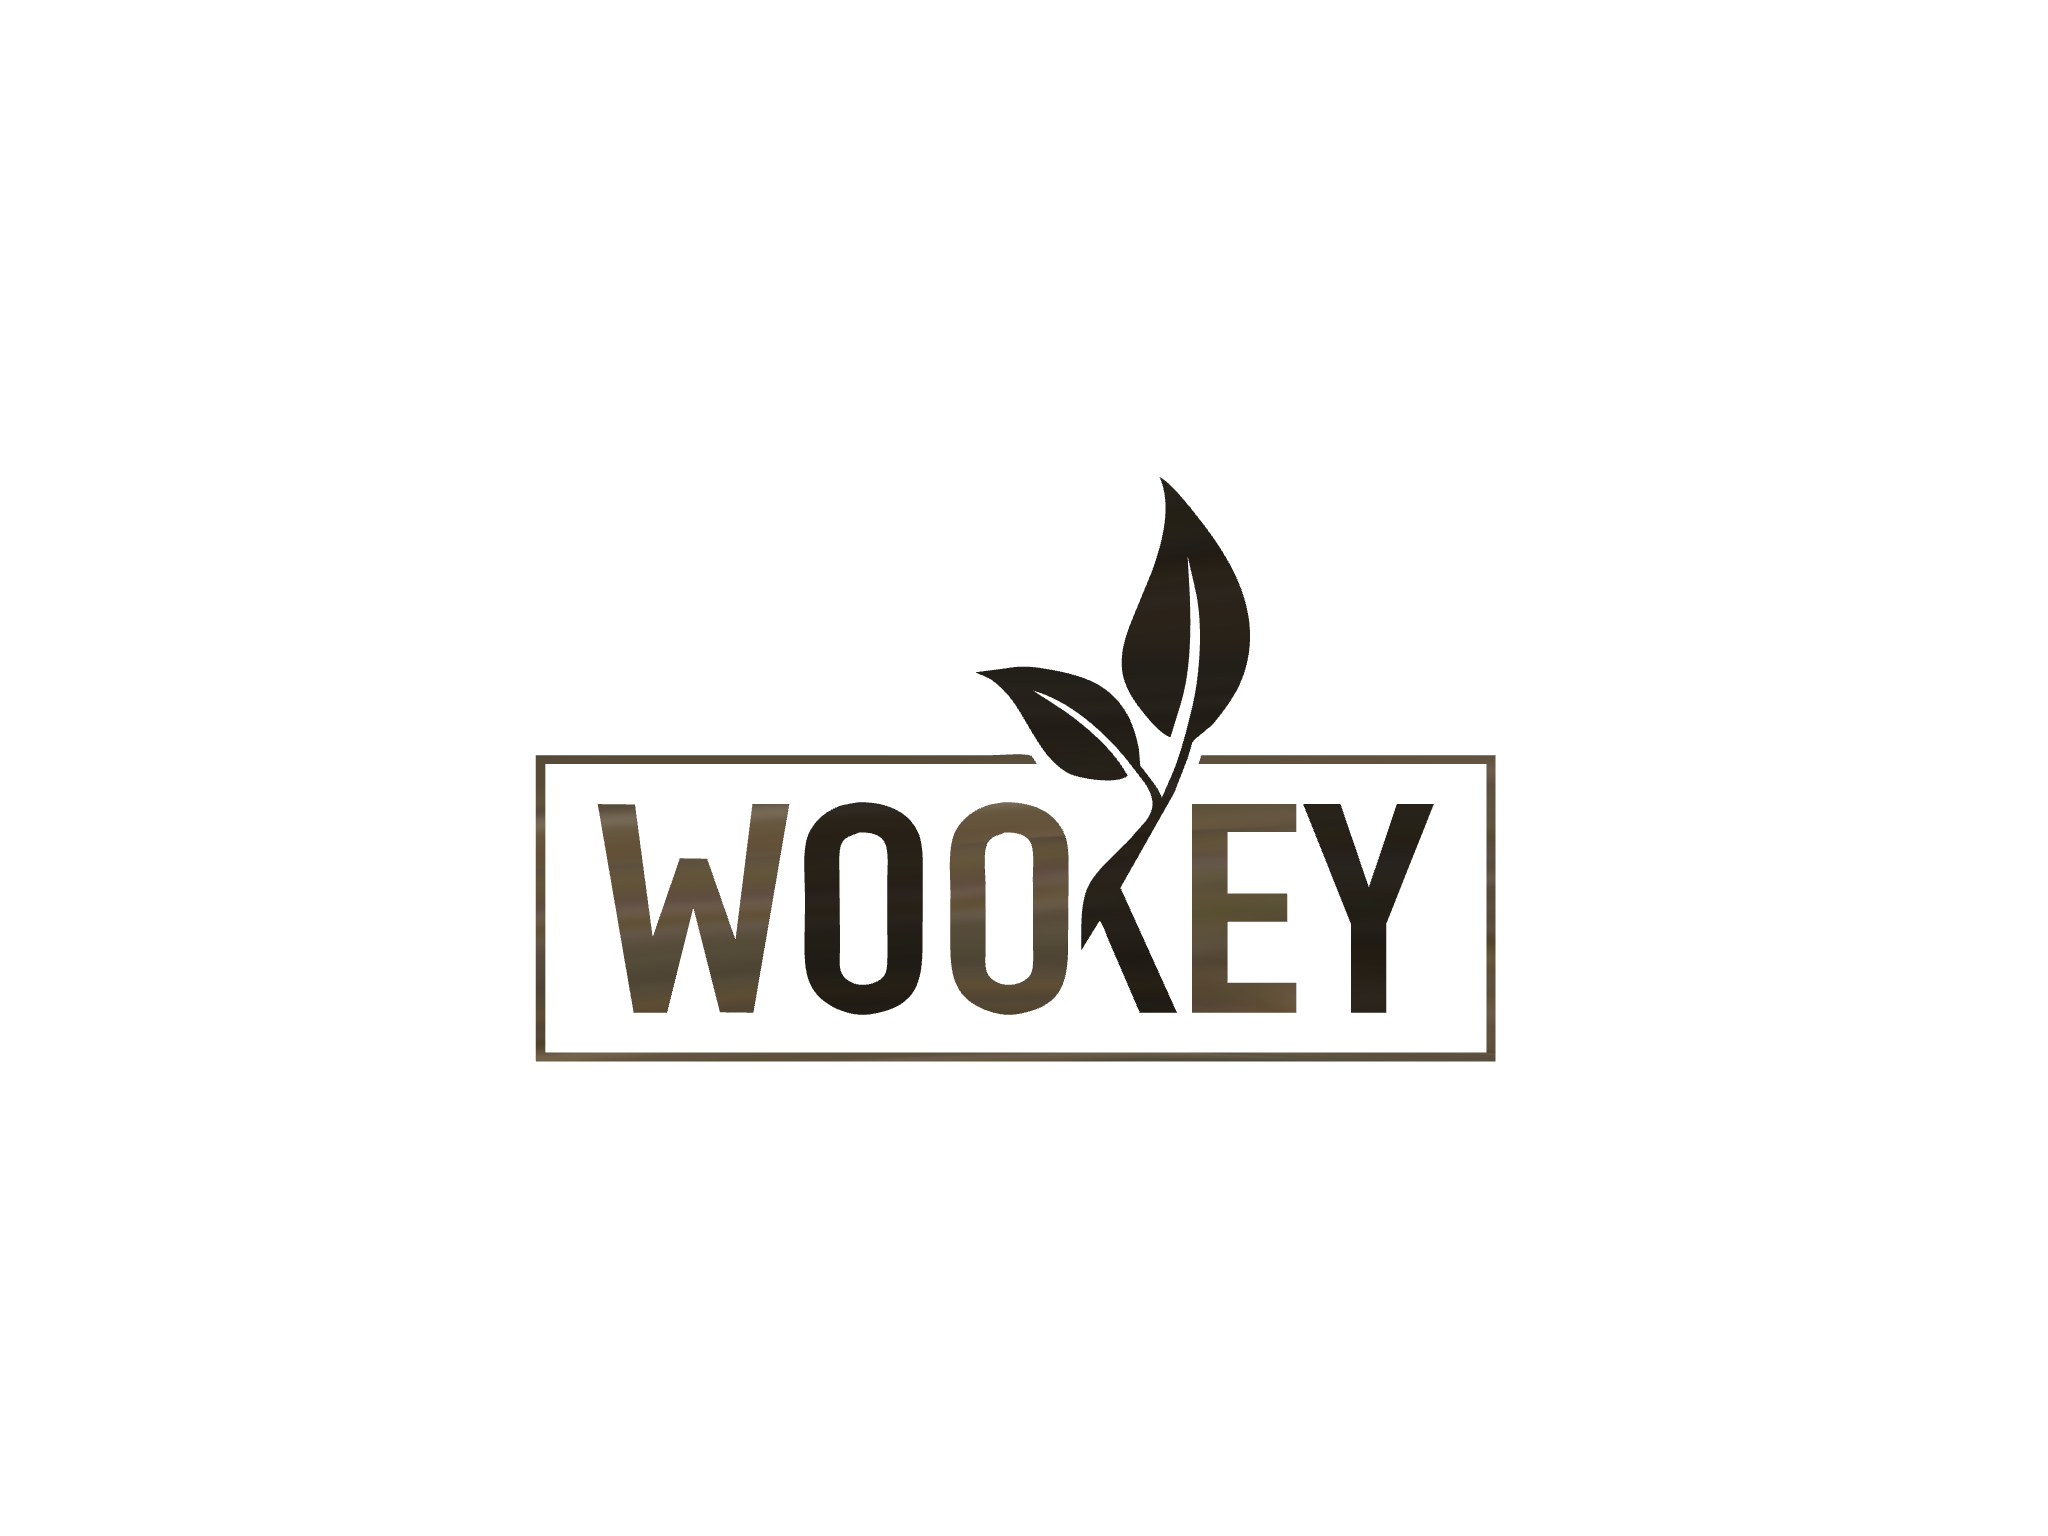 WooKey 3D - 3D design by Cristiano Tomazzolli Apr 1, 2018